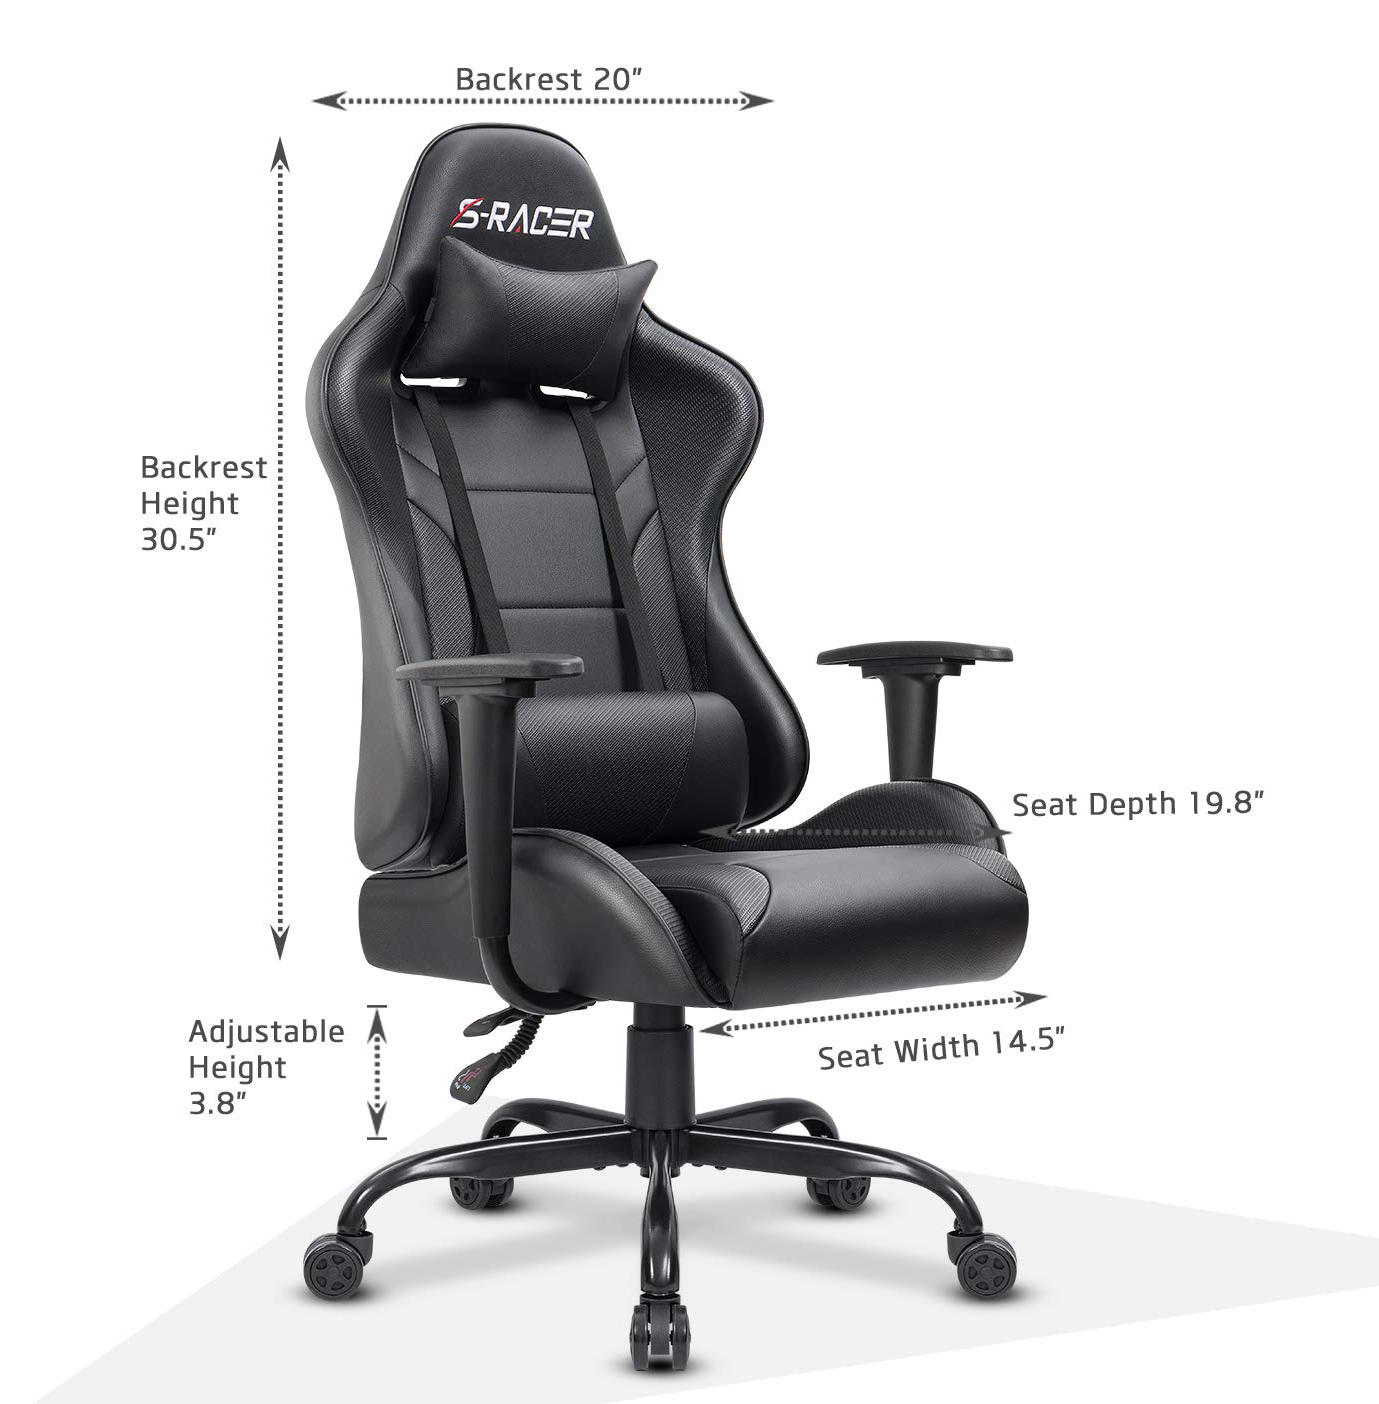 Garage Seat Lens Homall Office Gaming Chair Carbon Pu Leather Reclining Black Racing Style Executive Ergonomic Hydraulic Swivel Seat With Headrest And Lumbar Support